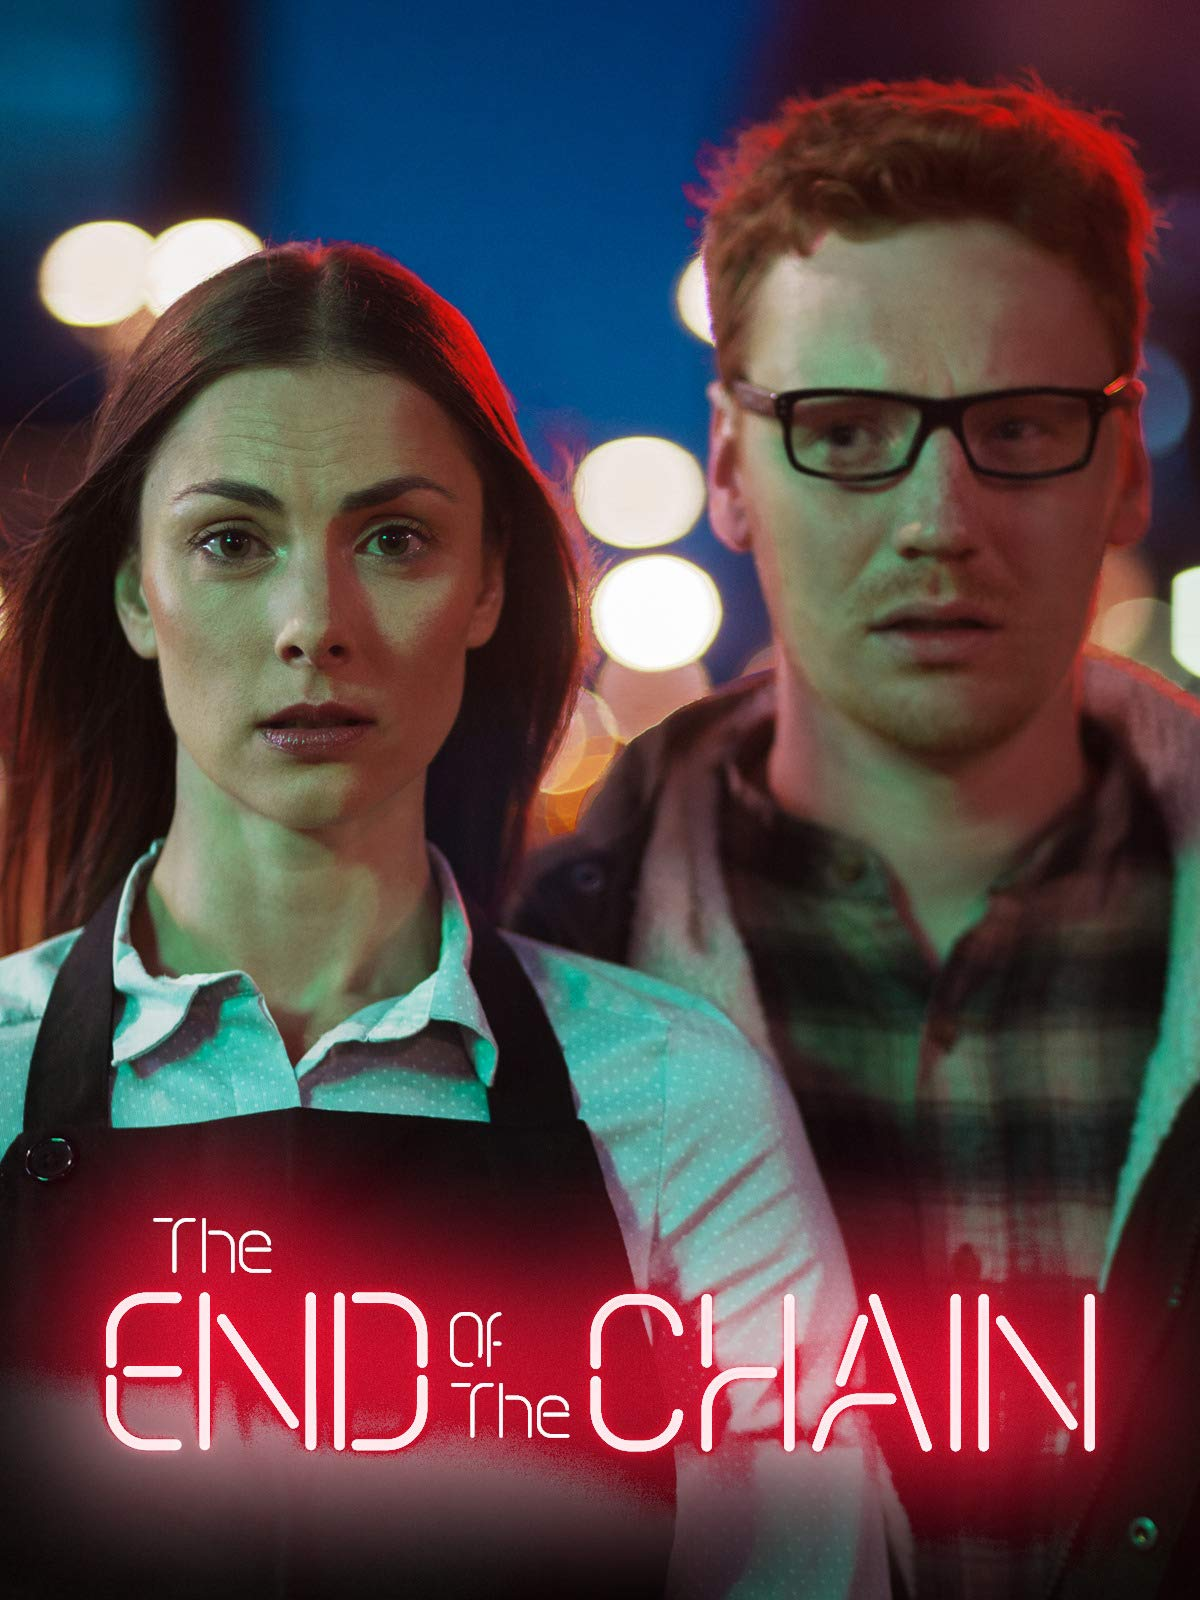 The End of the Chain